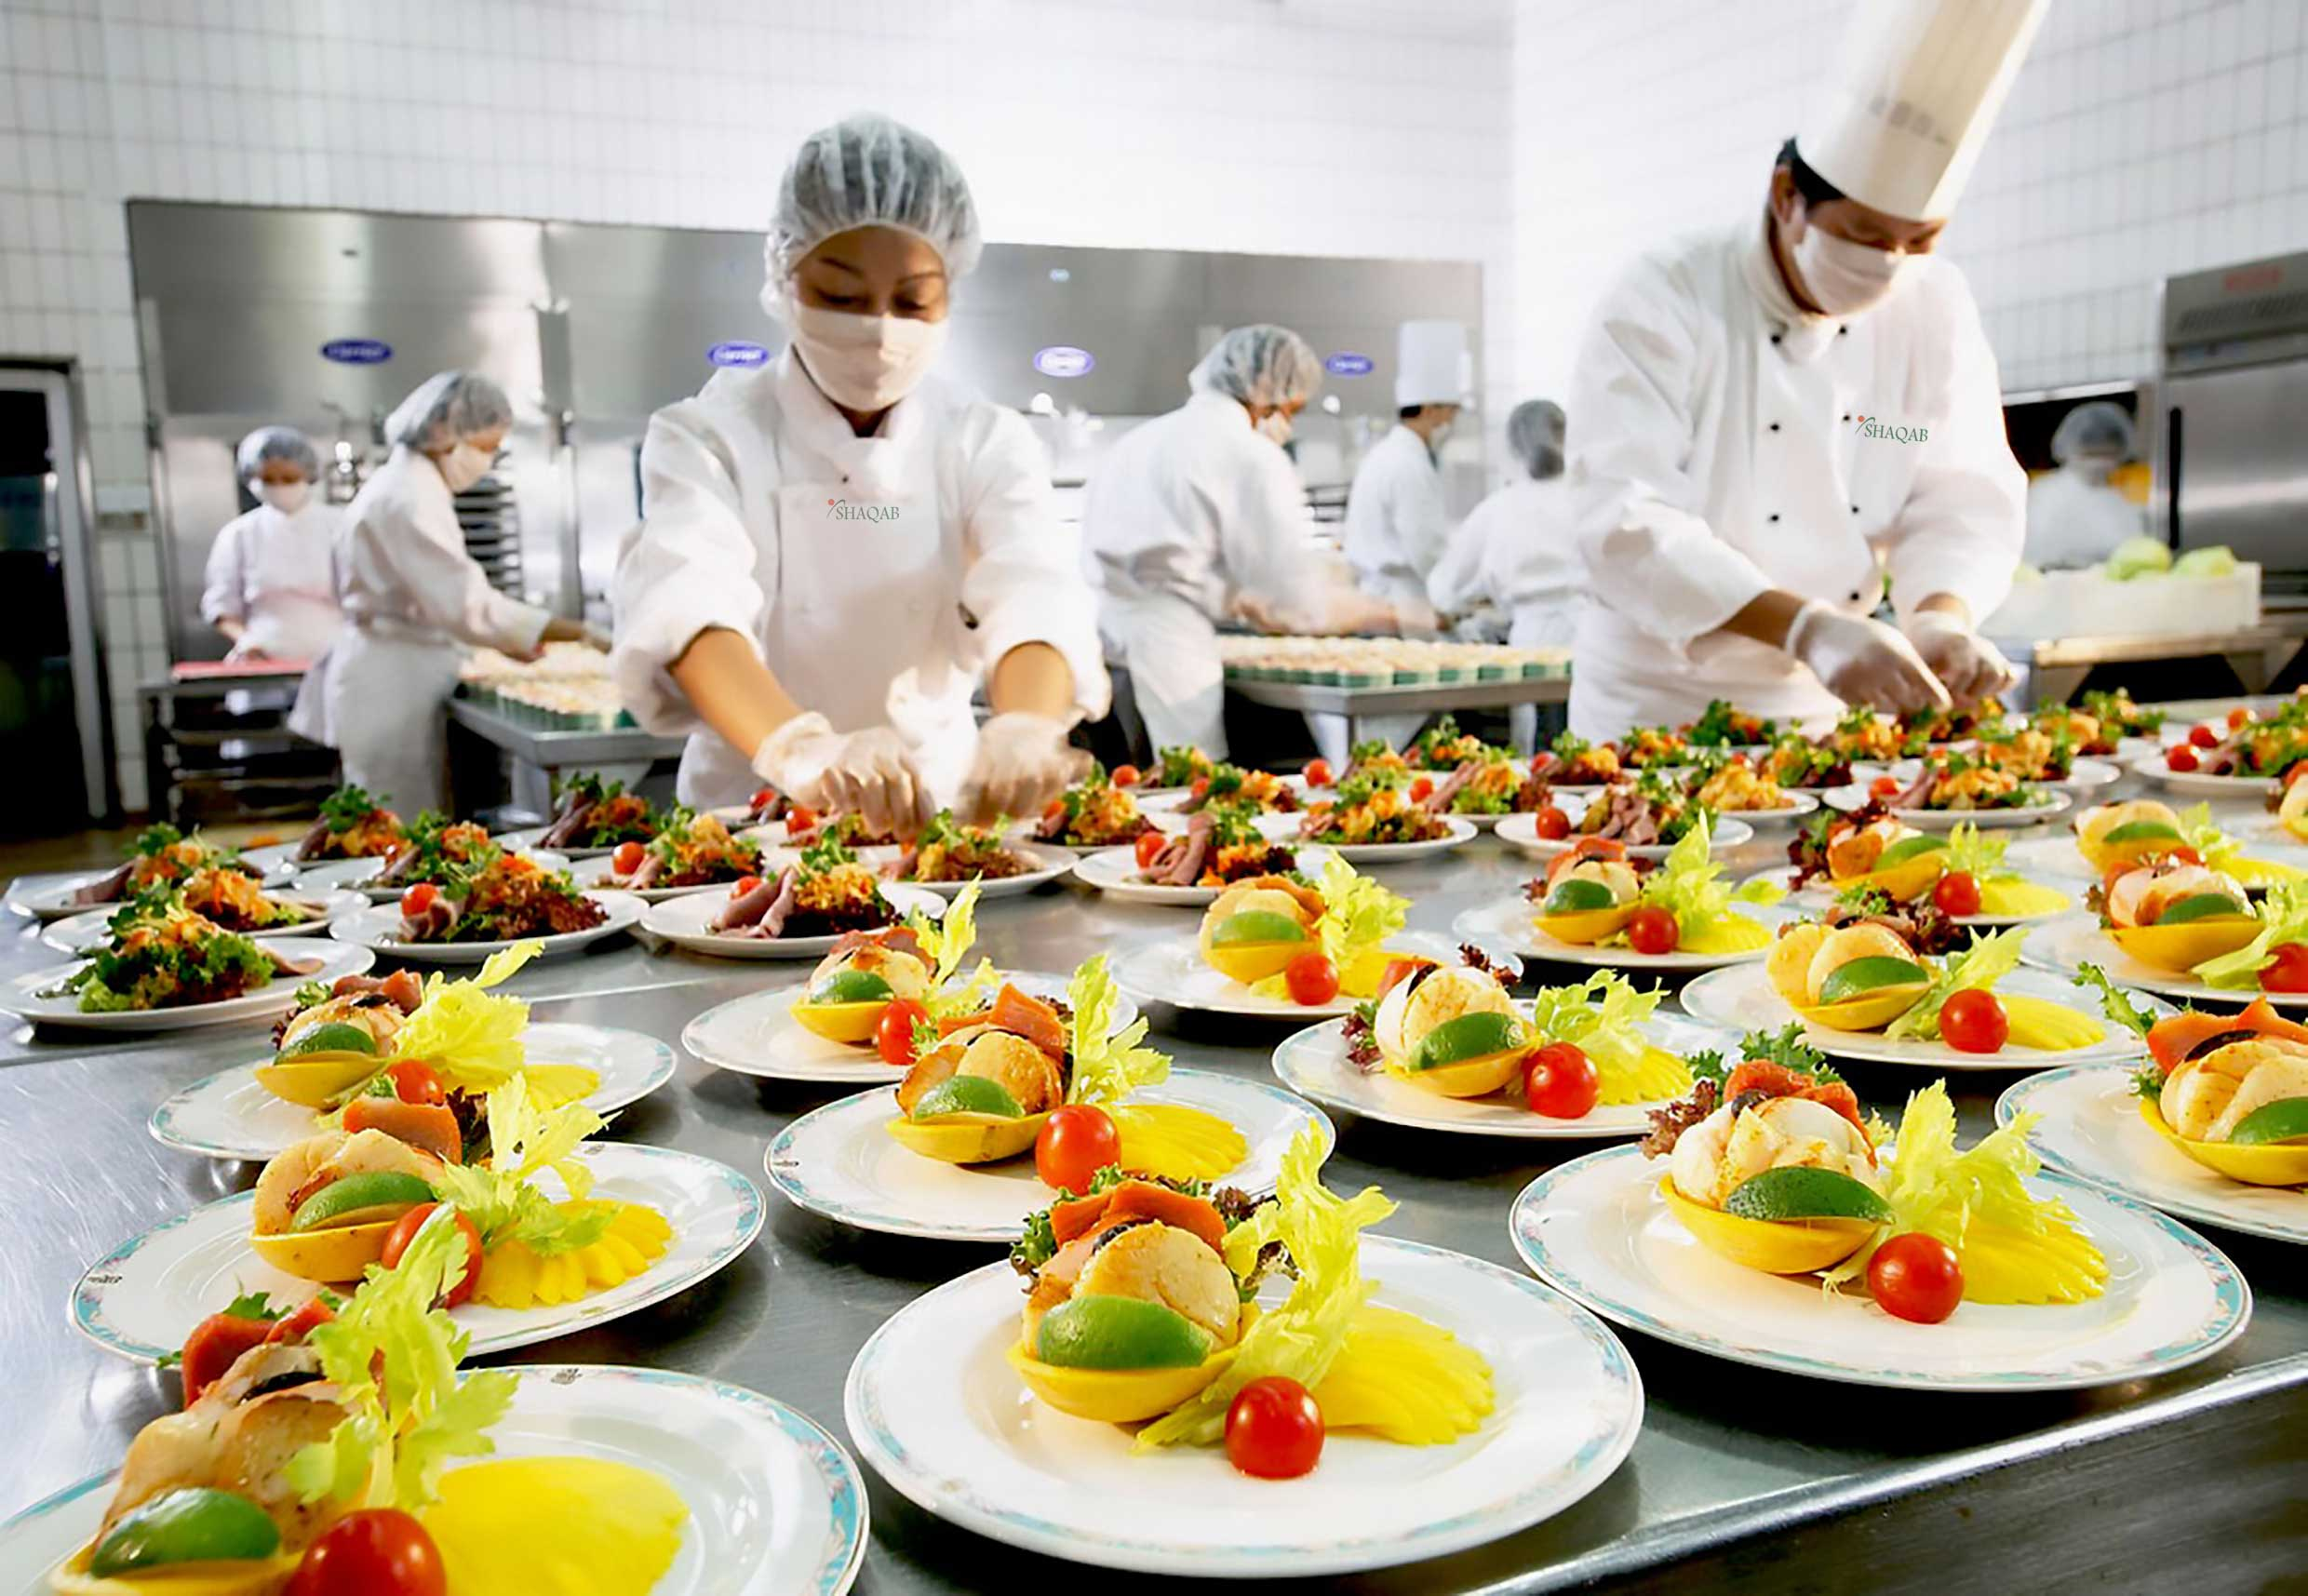 Shaqab for Catering companies